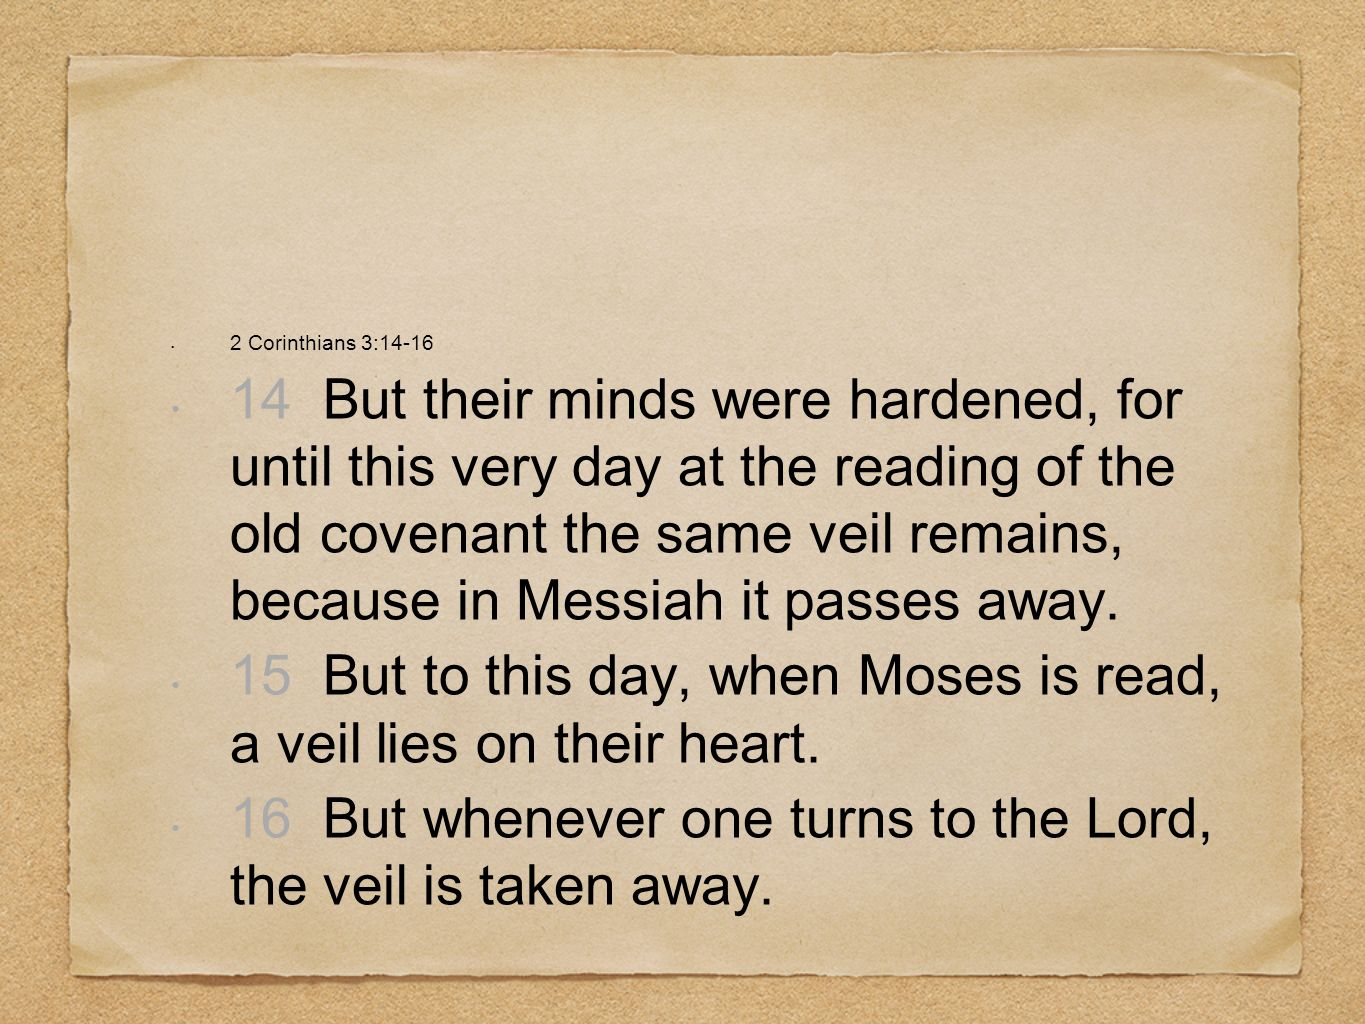 2 Corinthians 3:14-16 14 But their minds were hardened, for until this very day at the reading of the old covenant the same veil remains, because in Messiah it passes away.